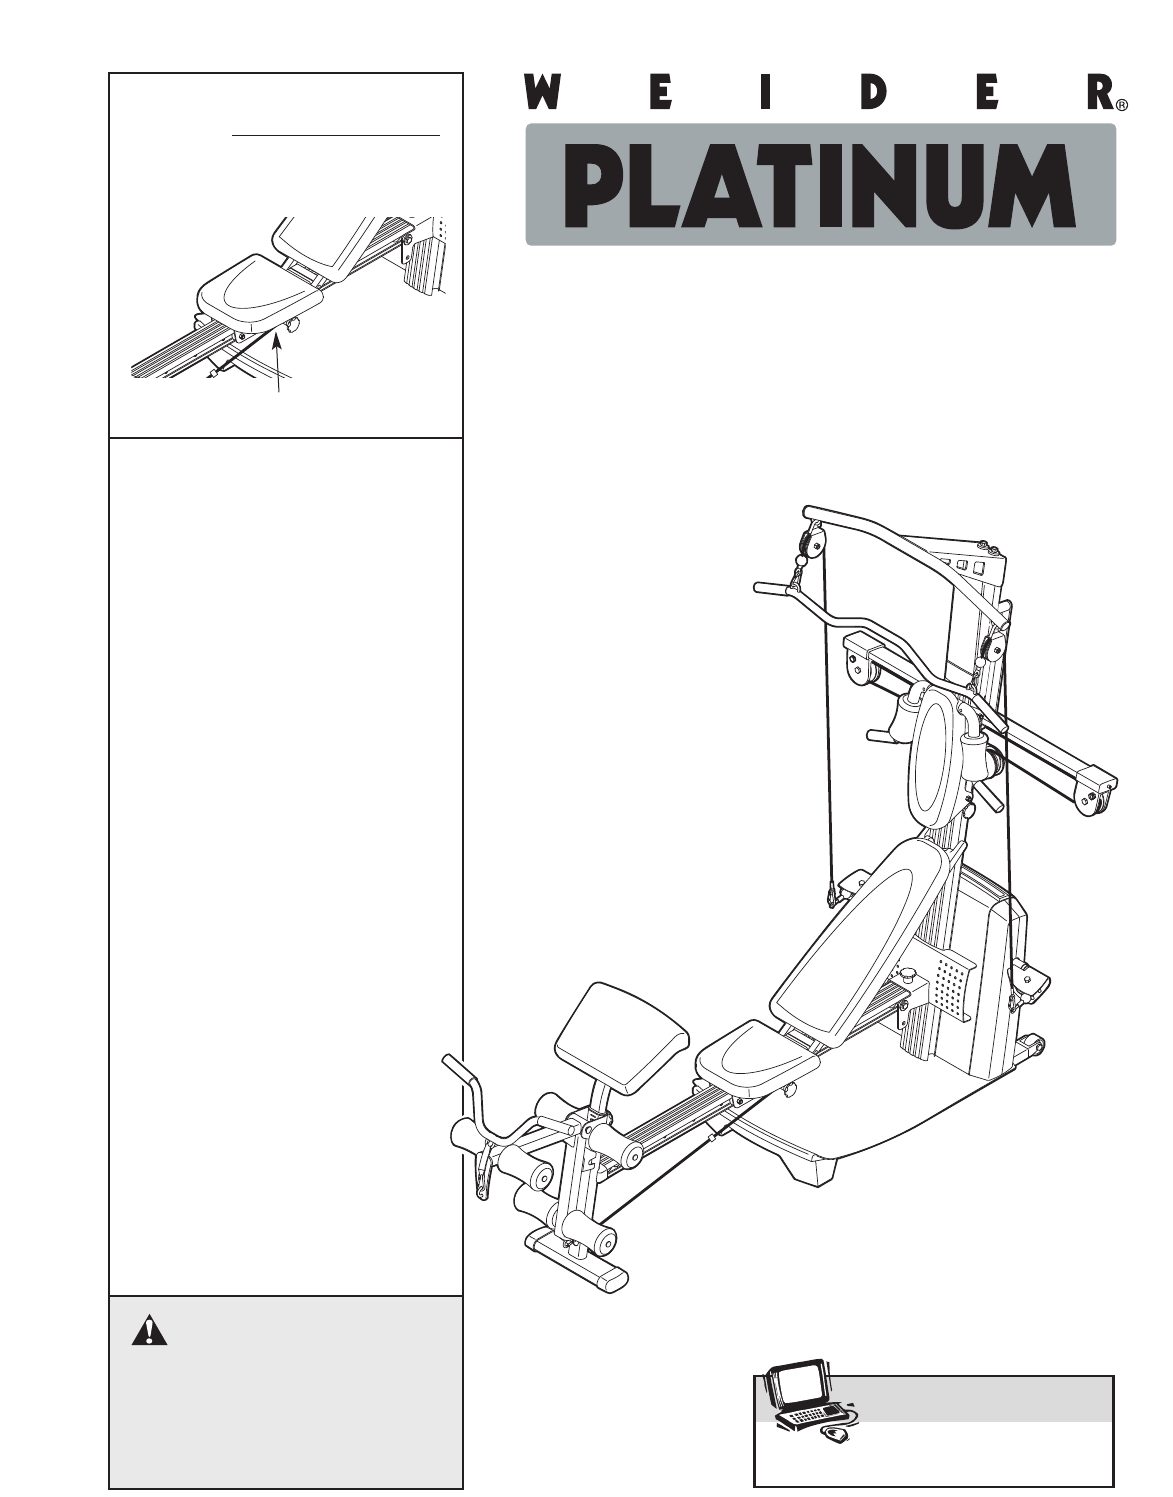 weider platinum plus home gym equipment